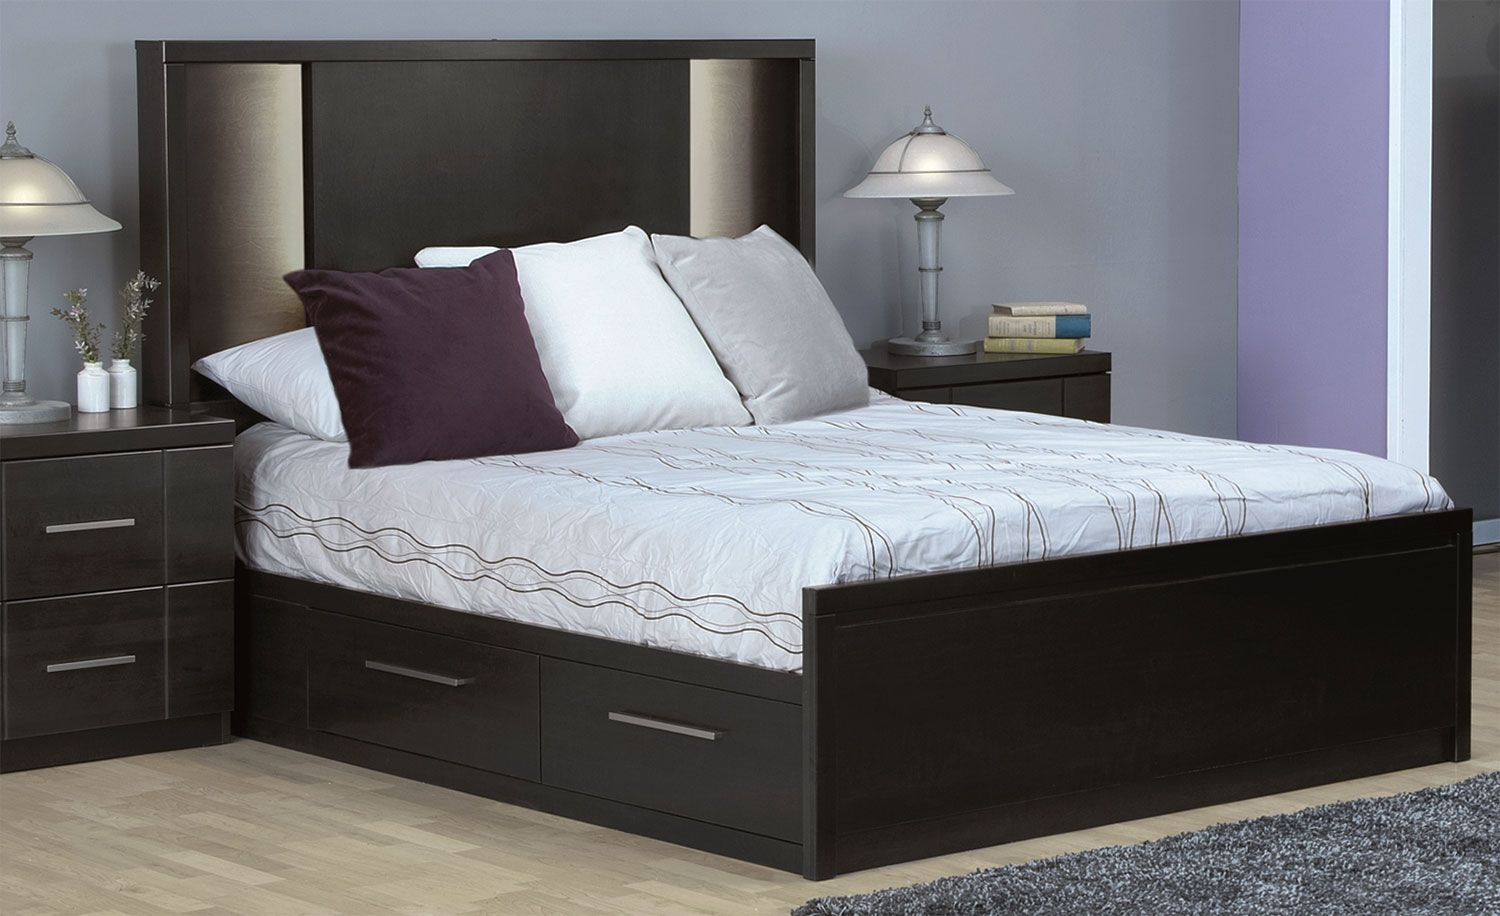 Seville Queen Storage Bed - Charcoal | Camas